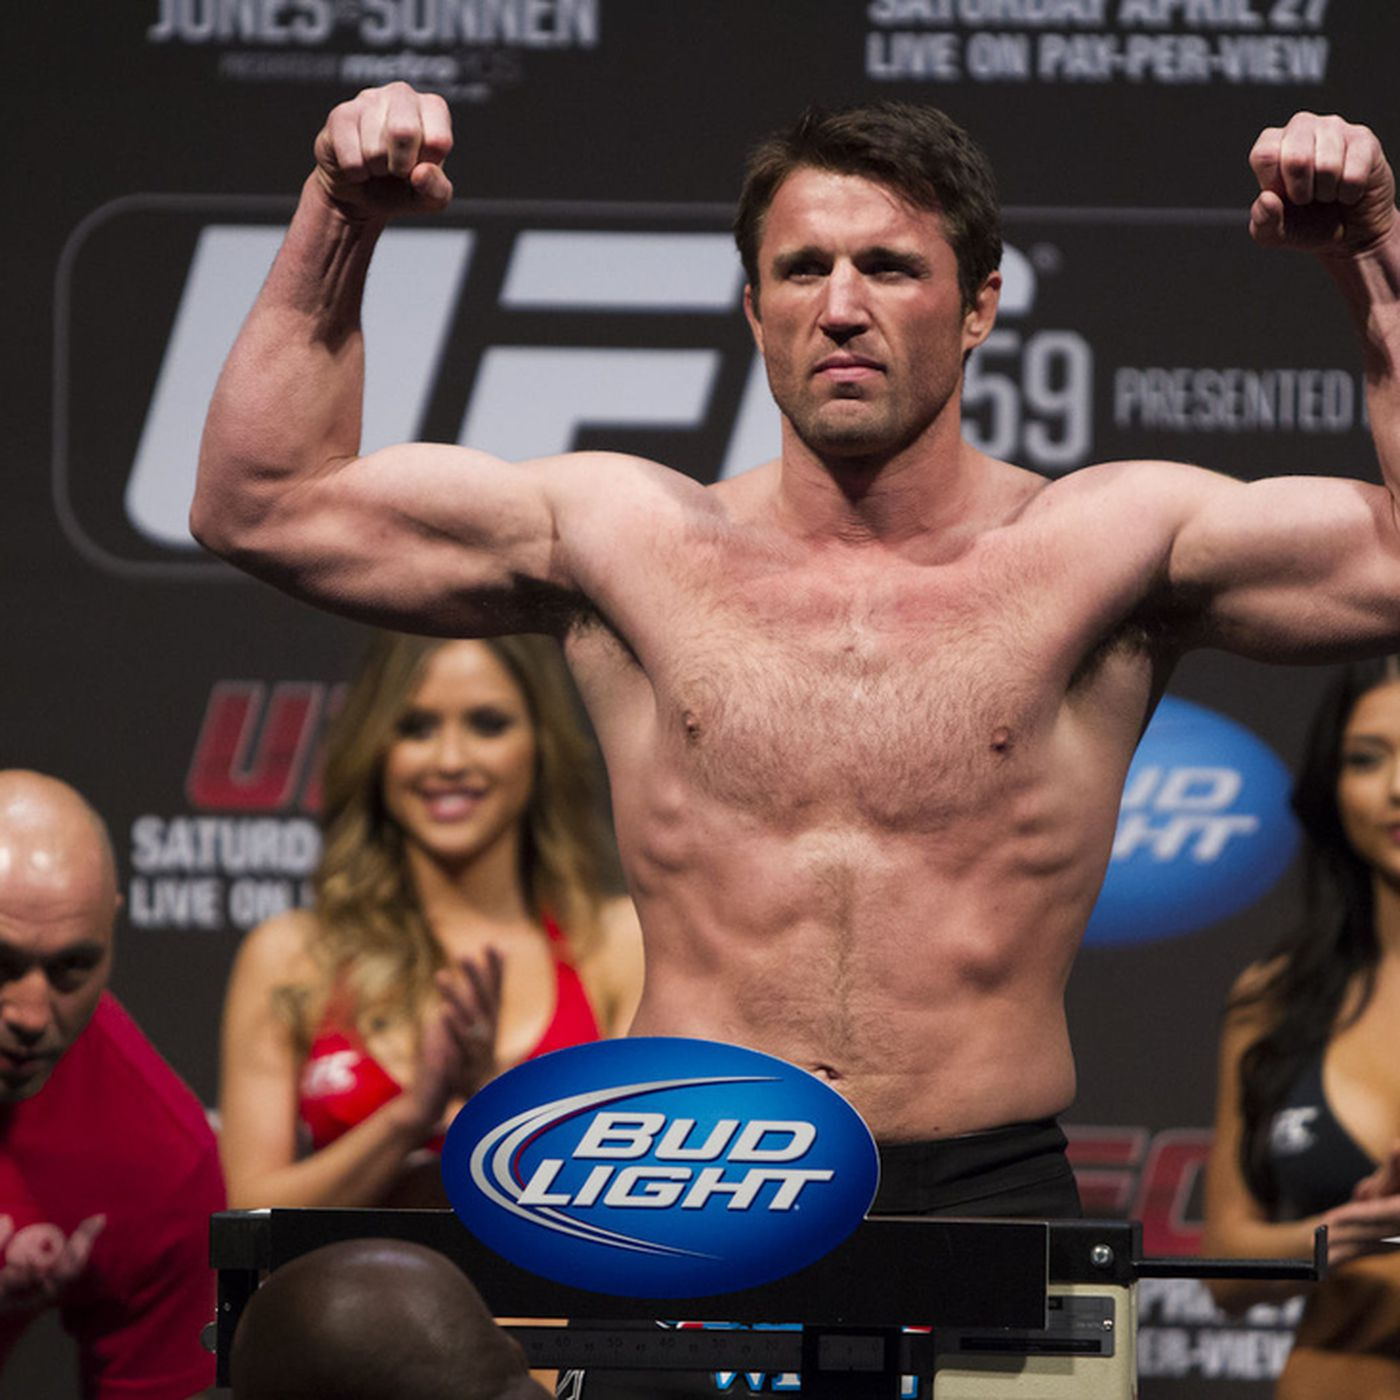 Chael Sonnen wants option to return to MMA, but isn't sure